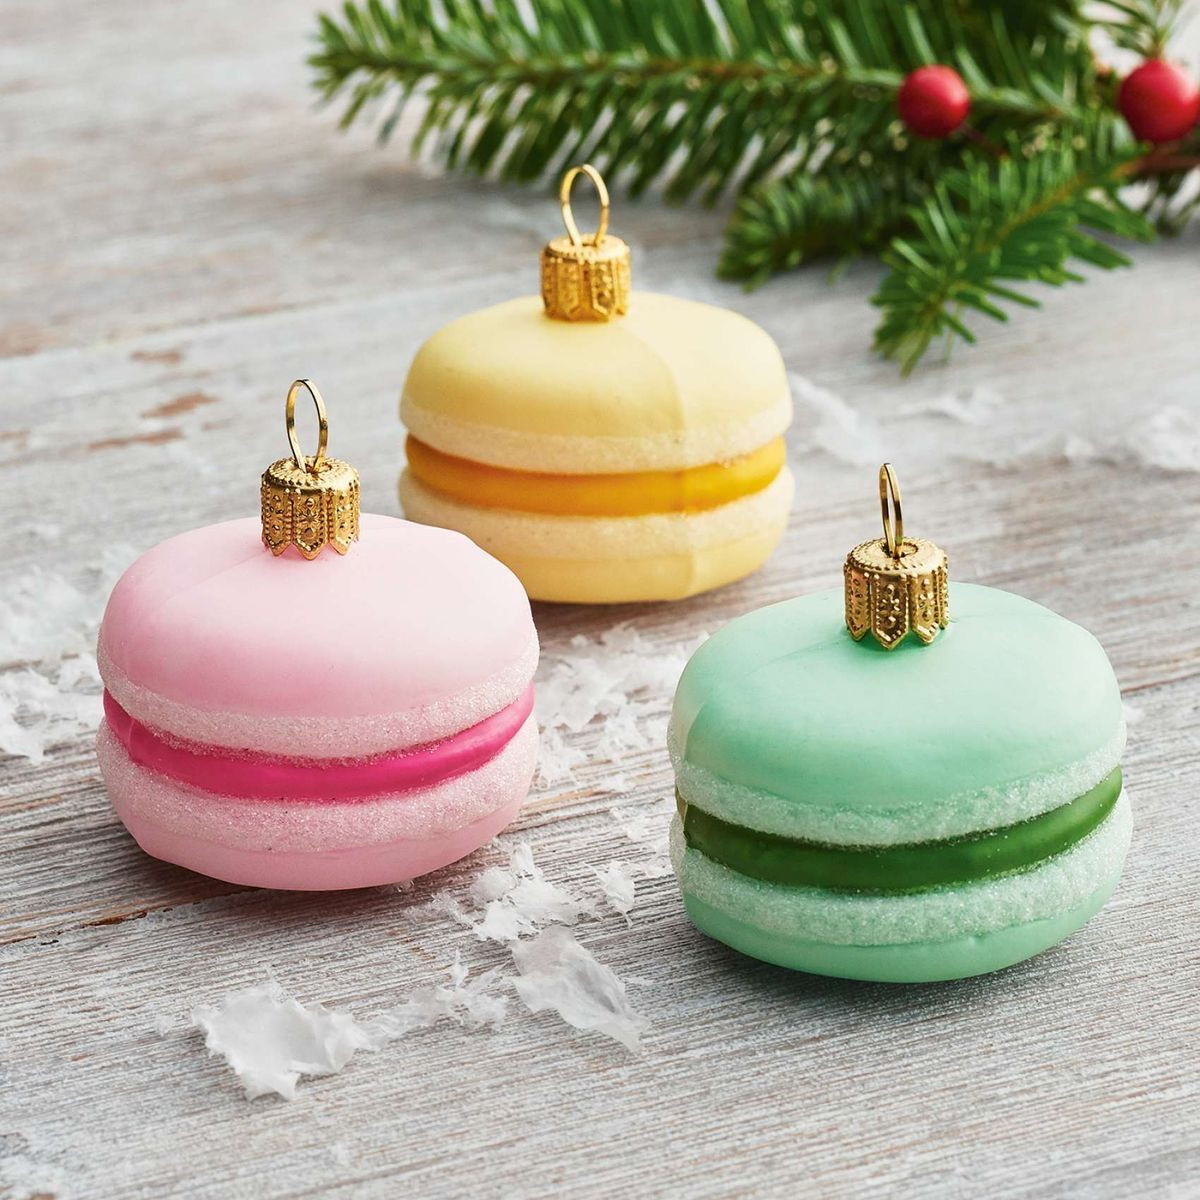 Christmas Macarons By Kate Lapszynski On All Is Merry